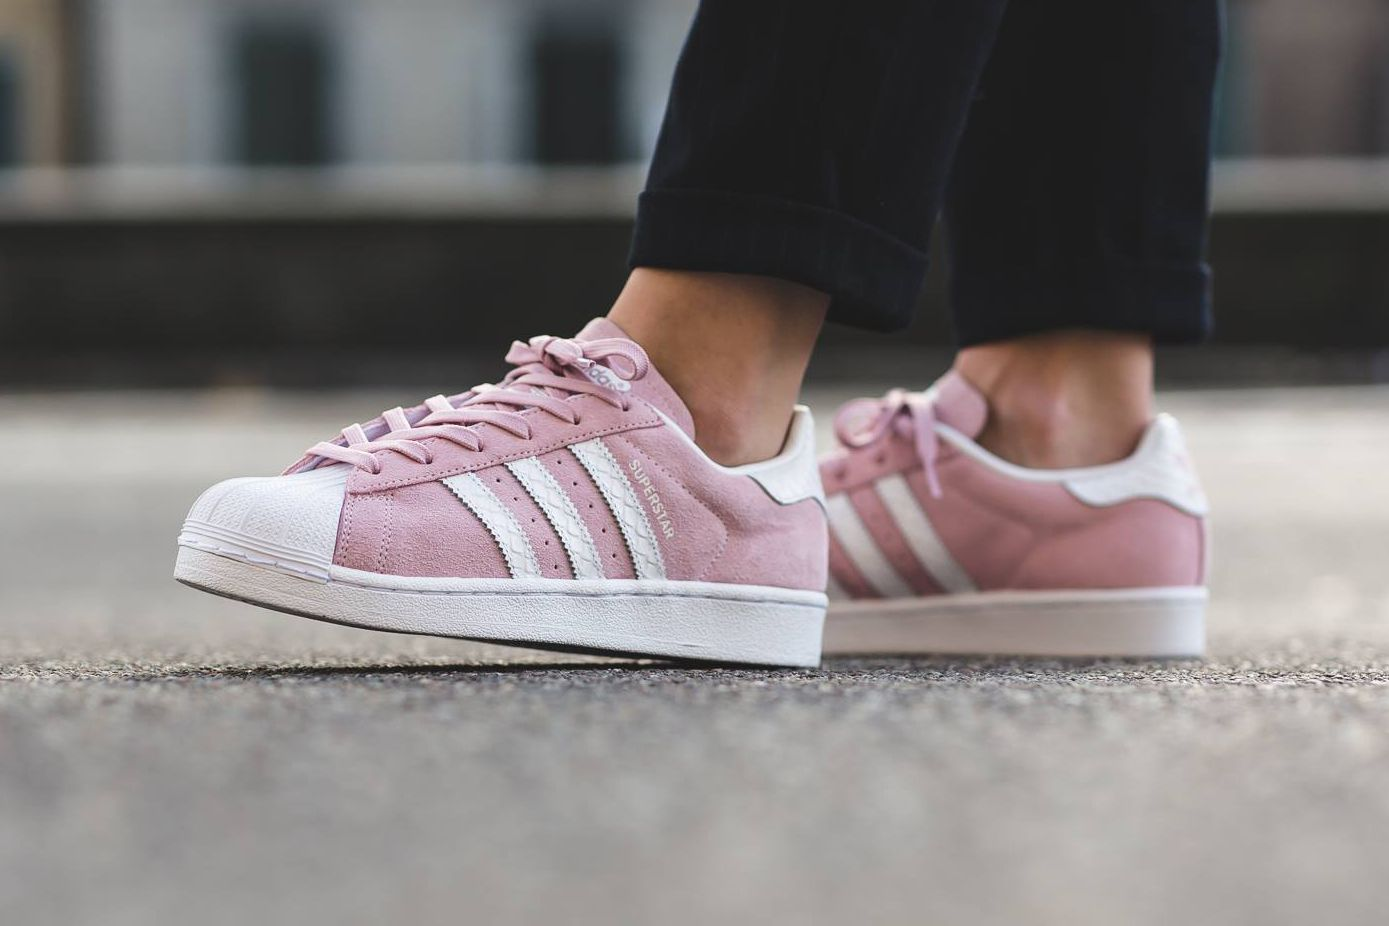 The adidas Superstar Receives a Pastel Pink Suede Treatment  eedd25f878